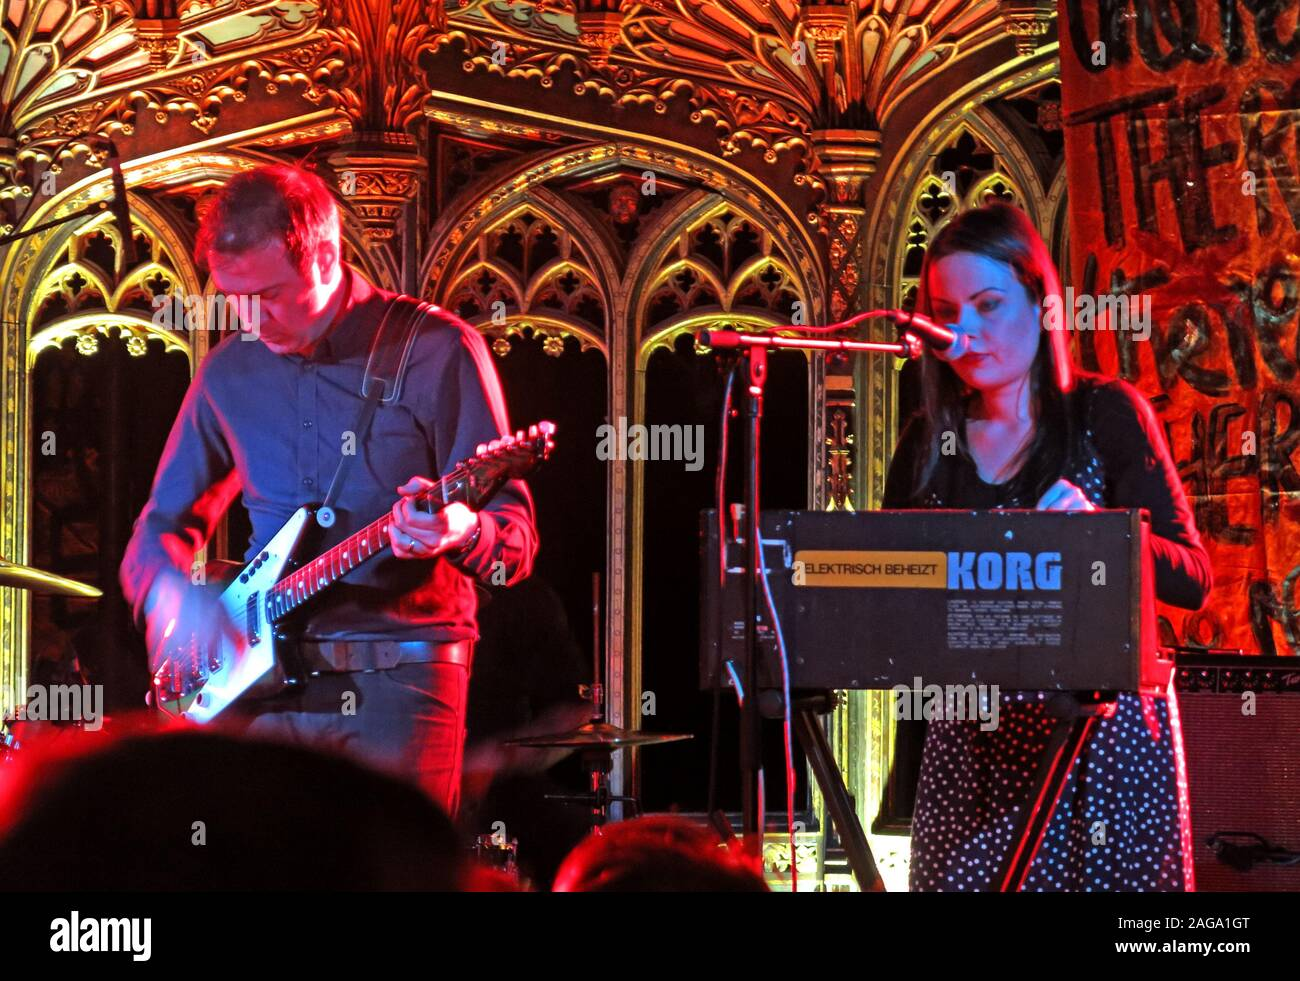 HotpixUK,@HotpixUK,GoTonySmith,Manchester Cathedral,gig,live,tour,2014,on stage,Daren Garratt,Dave Spurr,bass,Elena Poulou,Pete Greenway,guitar,Cathedral and Collegiate Church of St Mary,St Denys and St George,TheFallMancCath15-05-2014,Mark E Smith and The Fall perform live,Mark E Smith and The Fall,perform,performing,15th May 2014,The Fall 2014,MarkESmith,Mark.E.Smith,post-punk,band,group,Prestwich,cult,Mark E Smith of The Fall,Manchester Legend,1957-2018,Manchester artist,Manchester musician